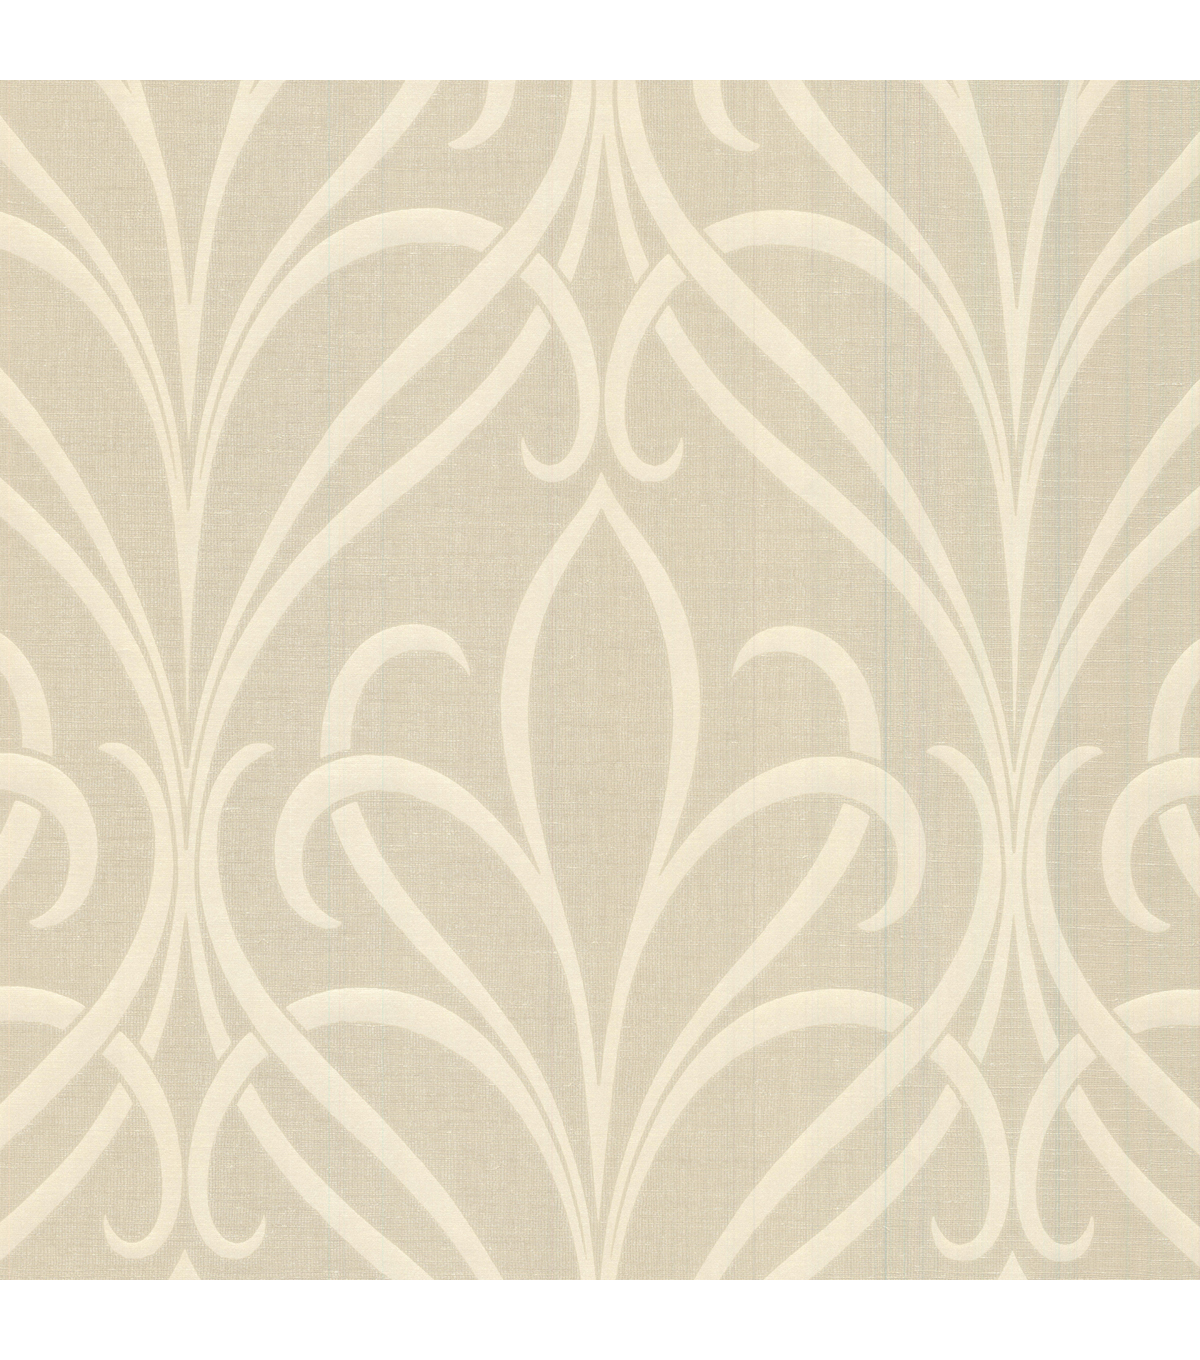 Lalique Gold Nouveau Damask Wallpaper Sample